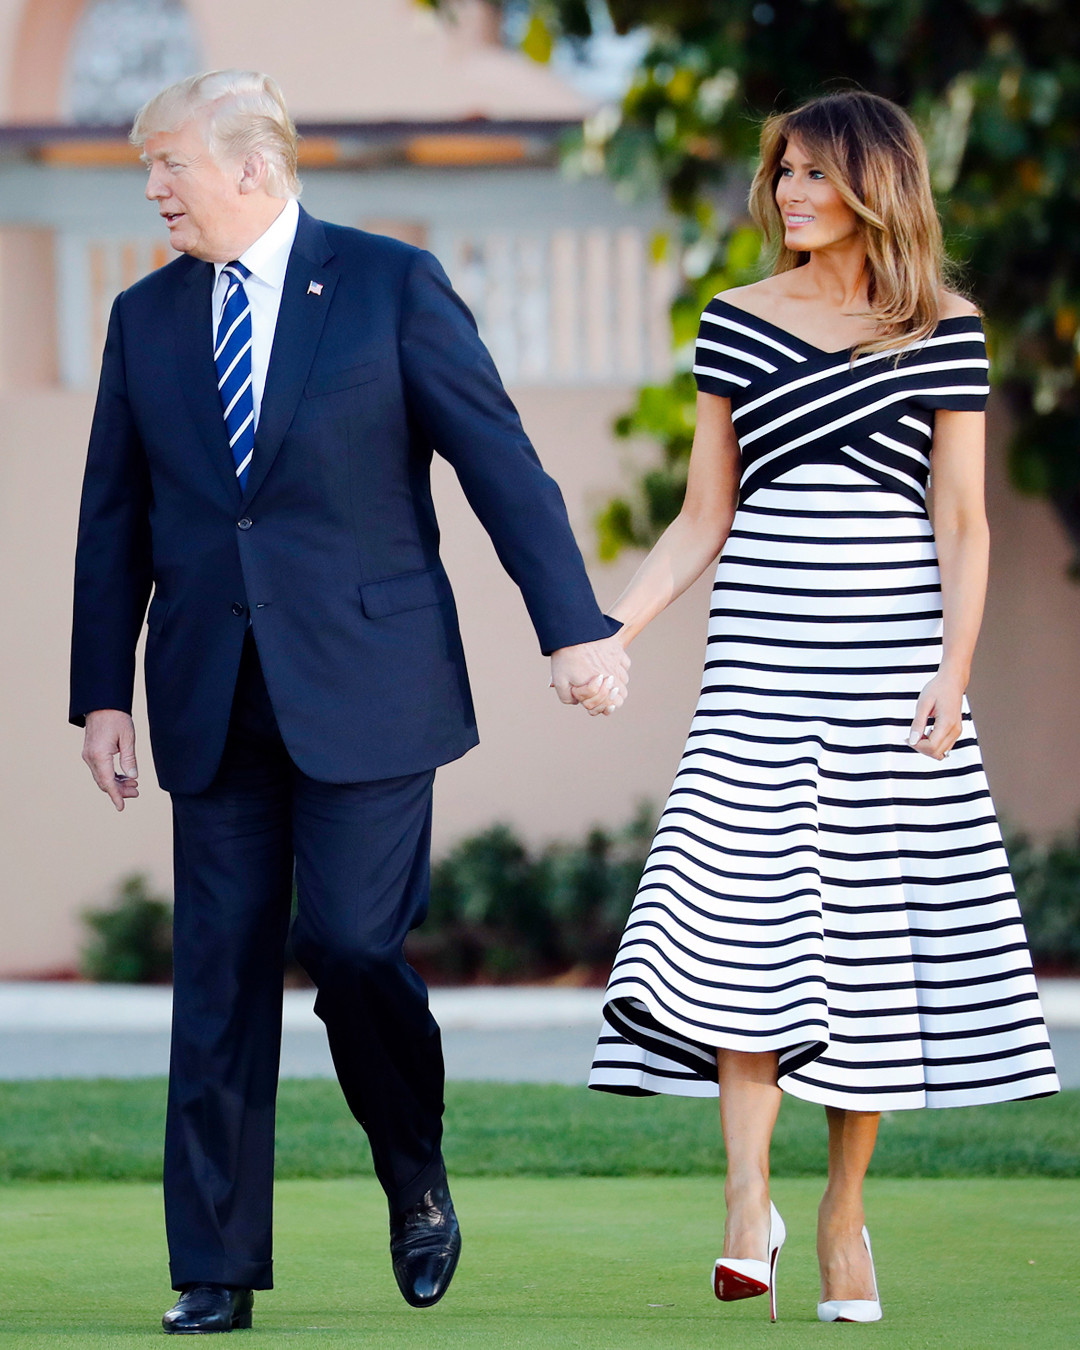 aa89850fc714 Melania and Donald Trump Match Outfits and More Celeb Couple Style ...